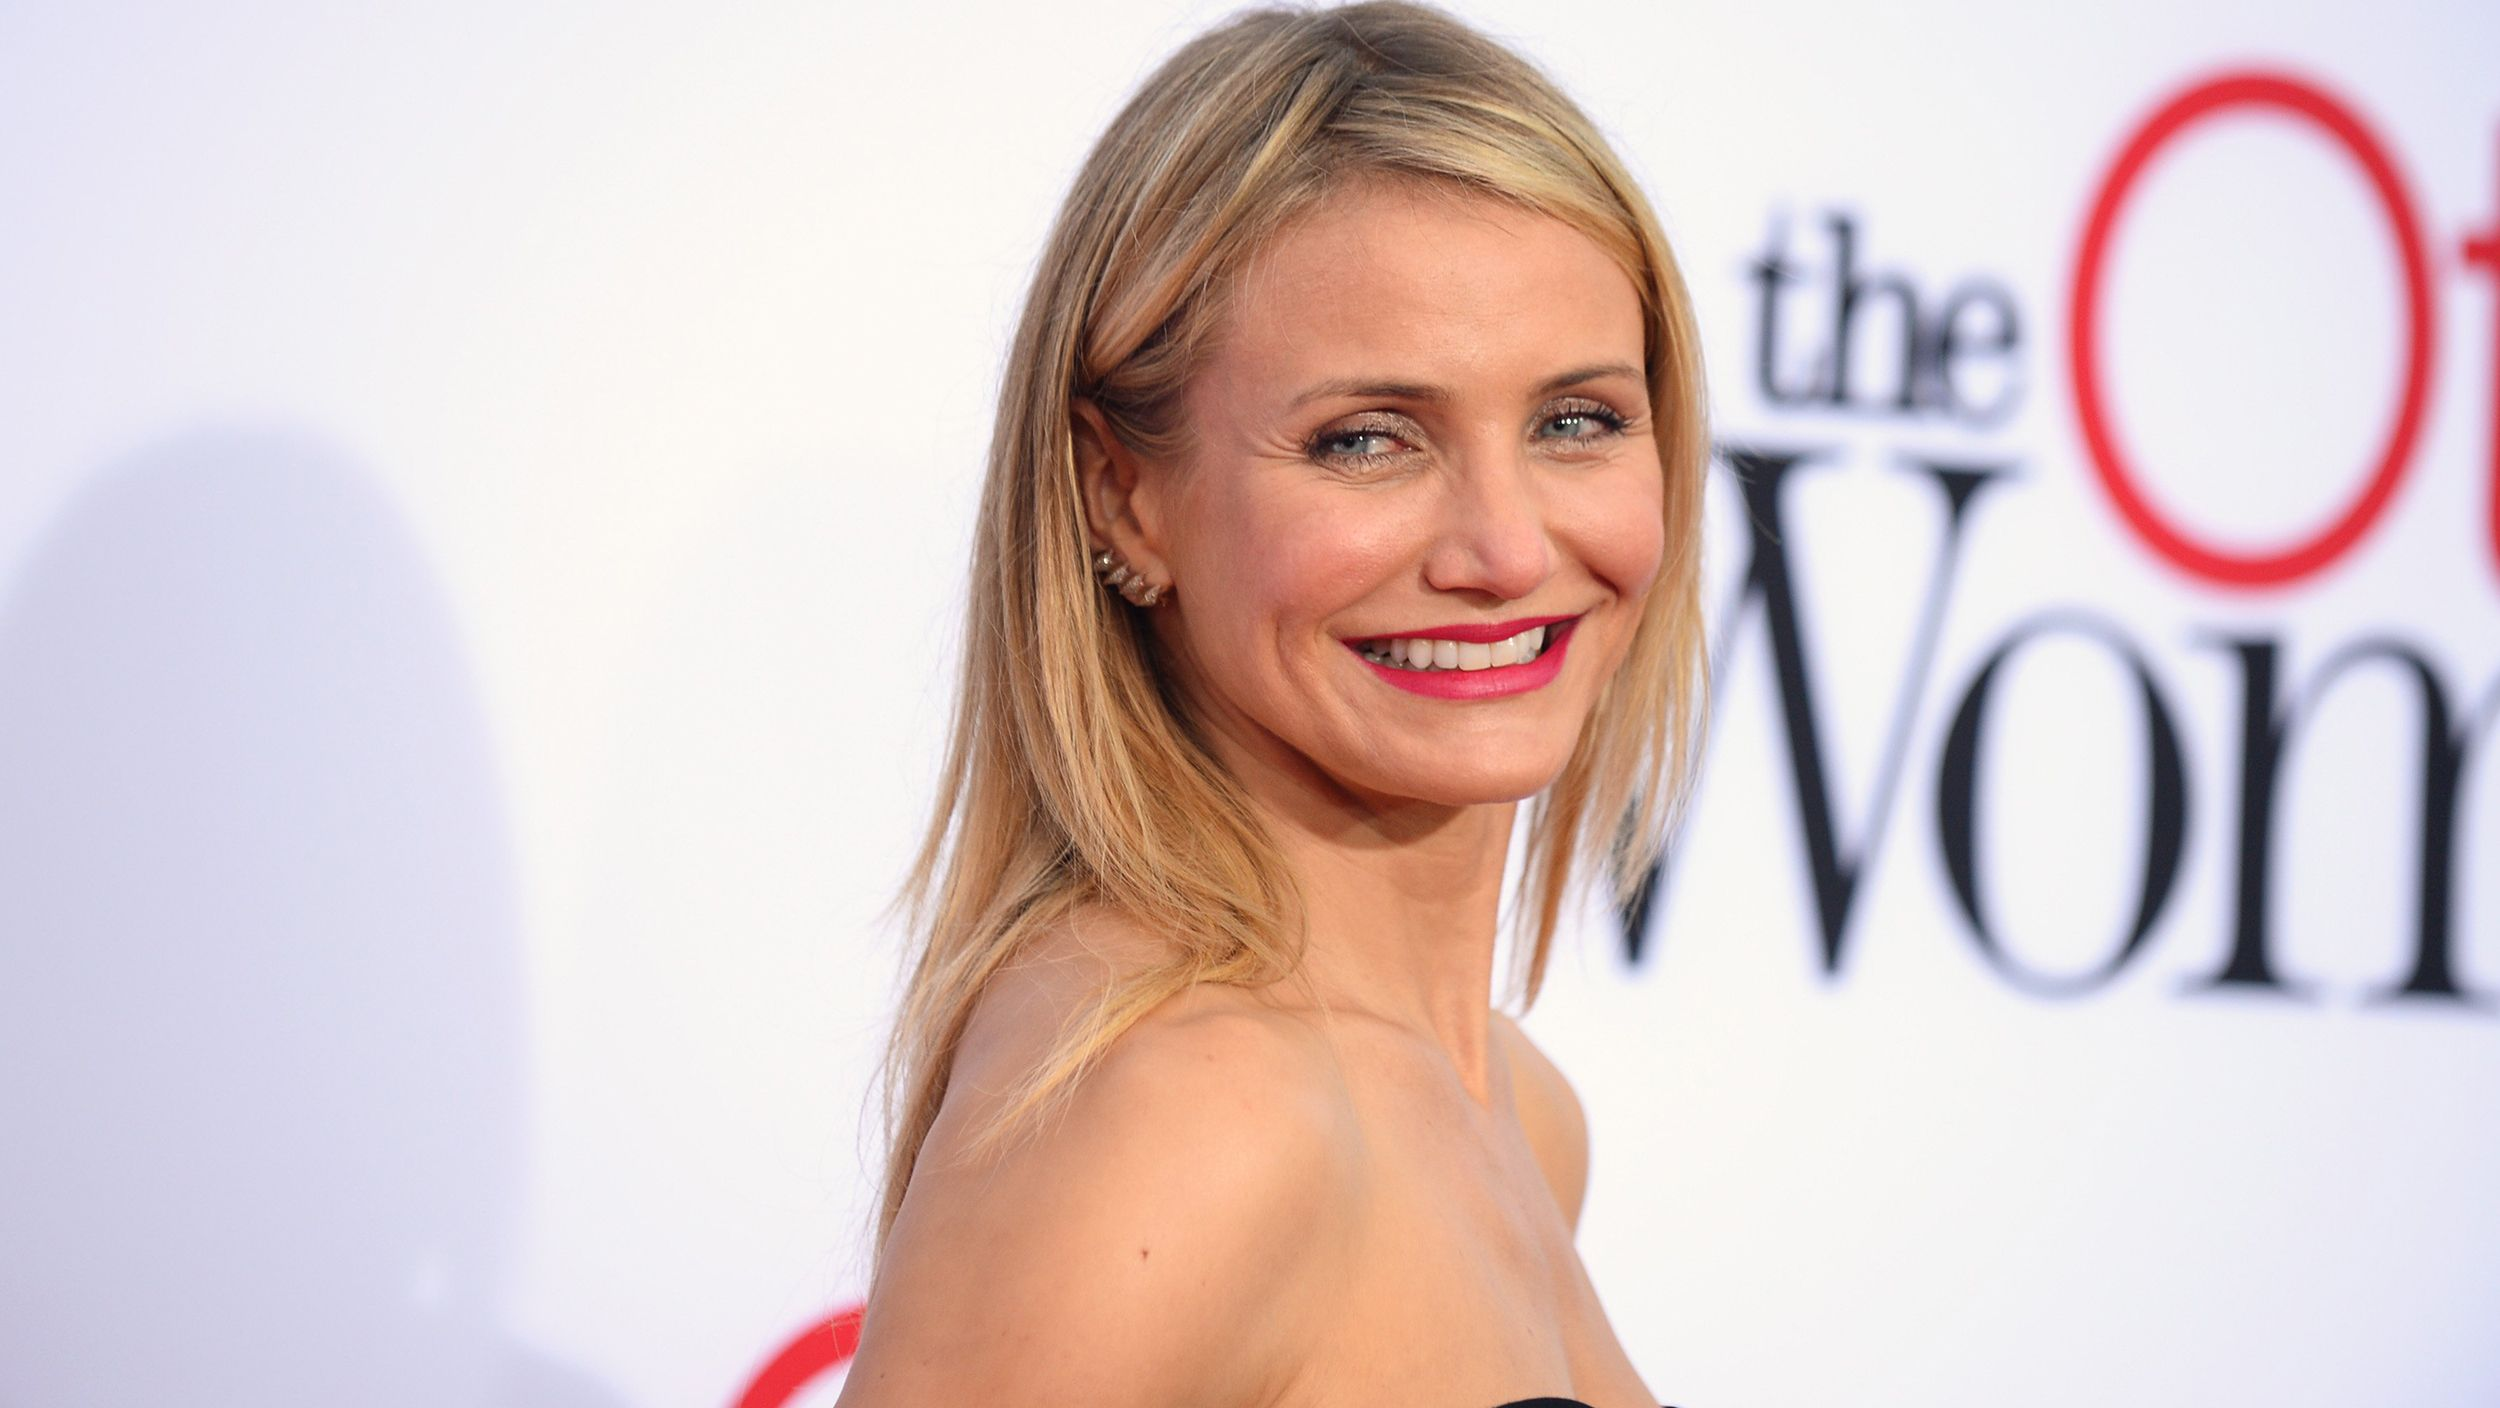 Child Free By Choice How Cameron Diaz Represents Women Like Me